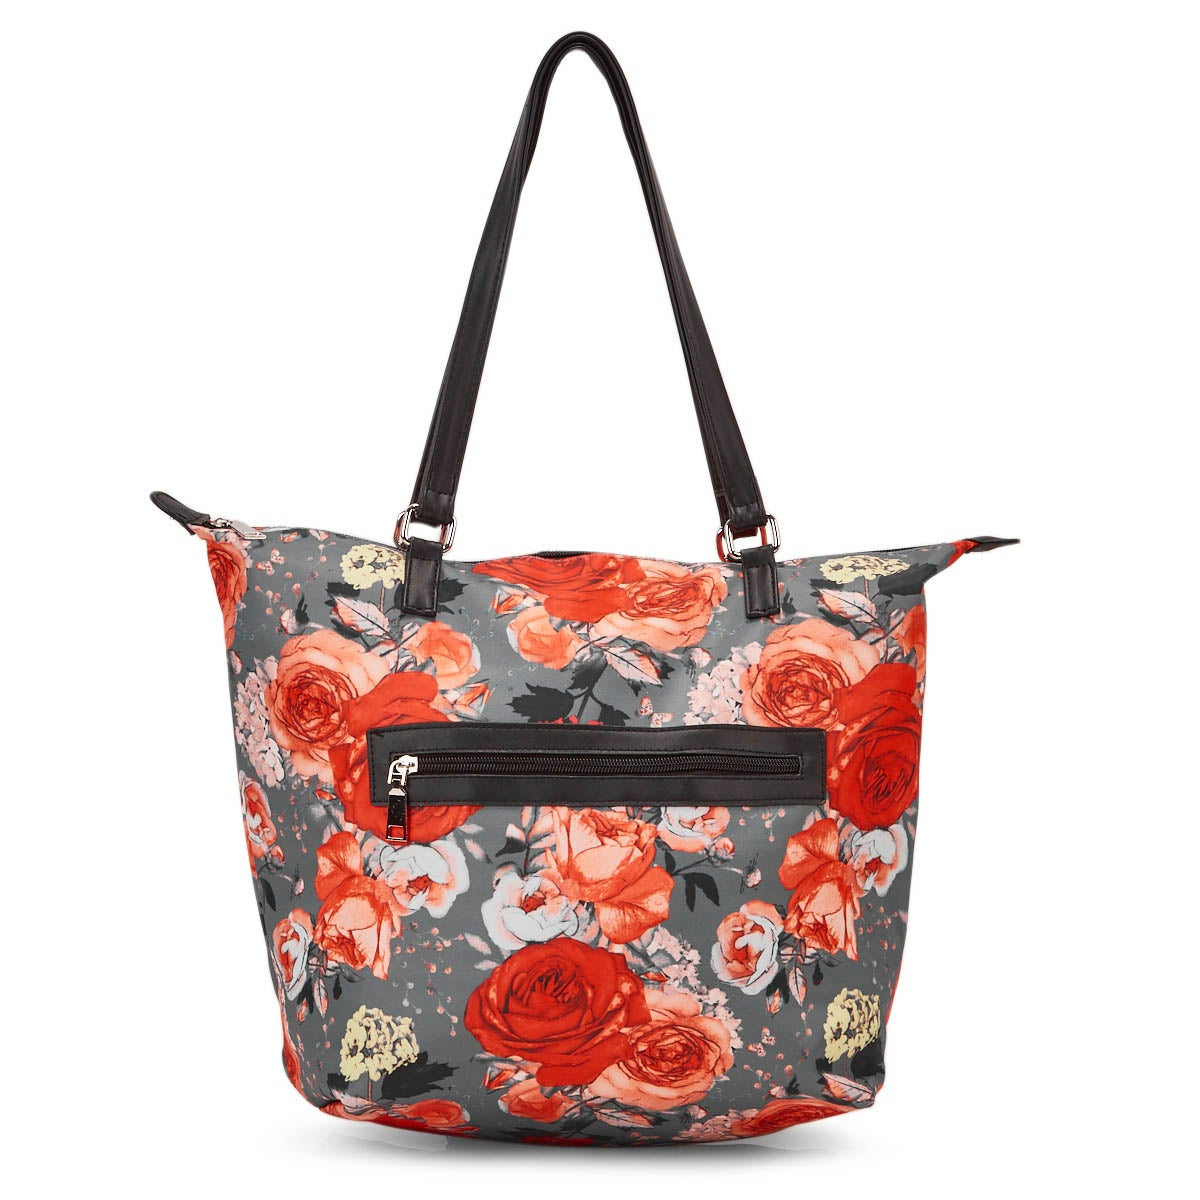 Lds grey/orng flower tote hand bag